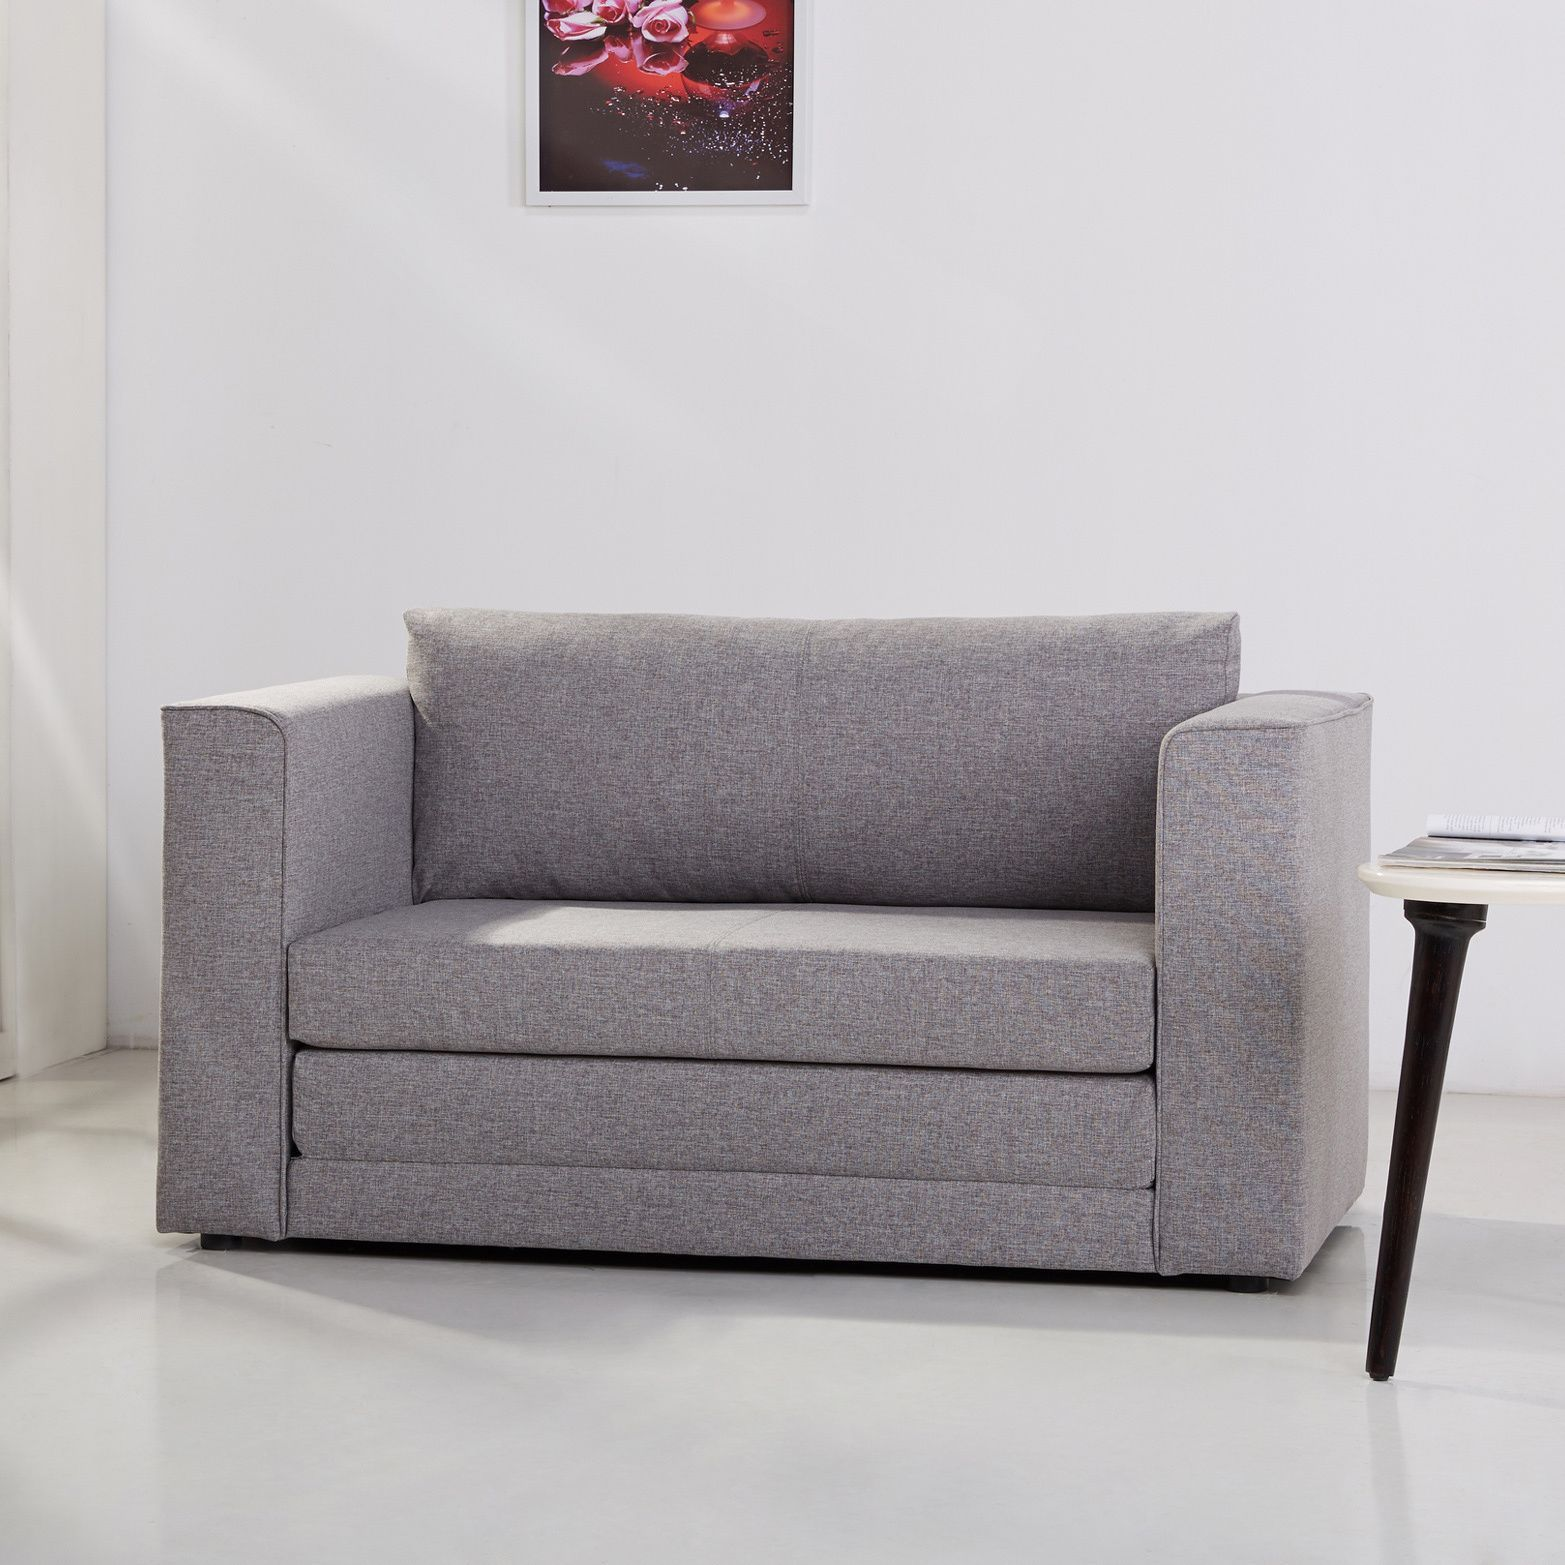 This Multi Functional Contemporary Loveseat Sleeper Adds Comfort And Style To Your Home European